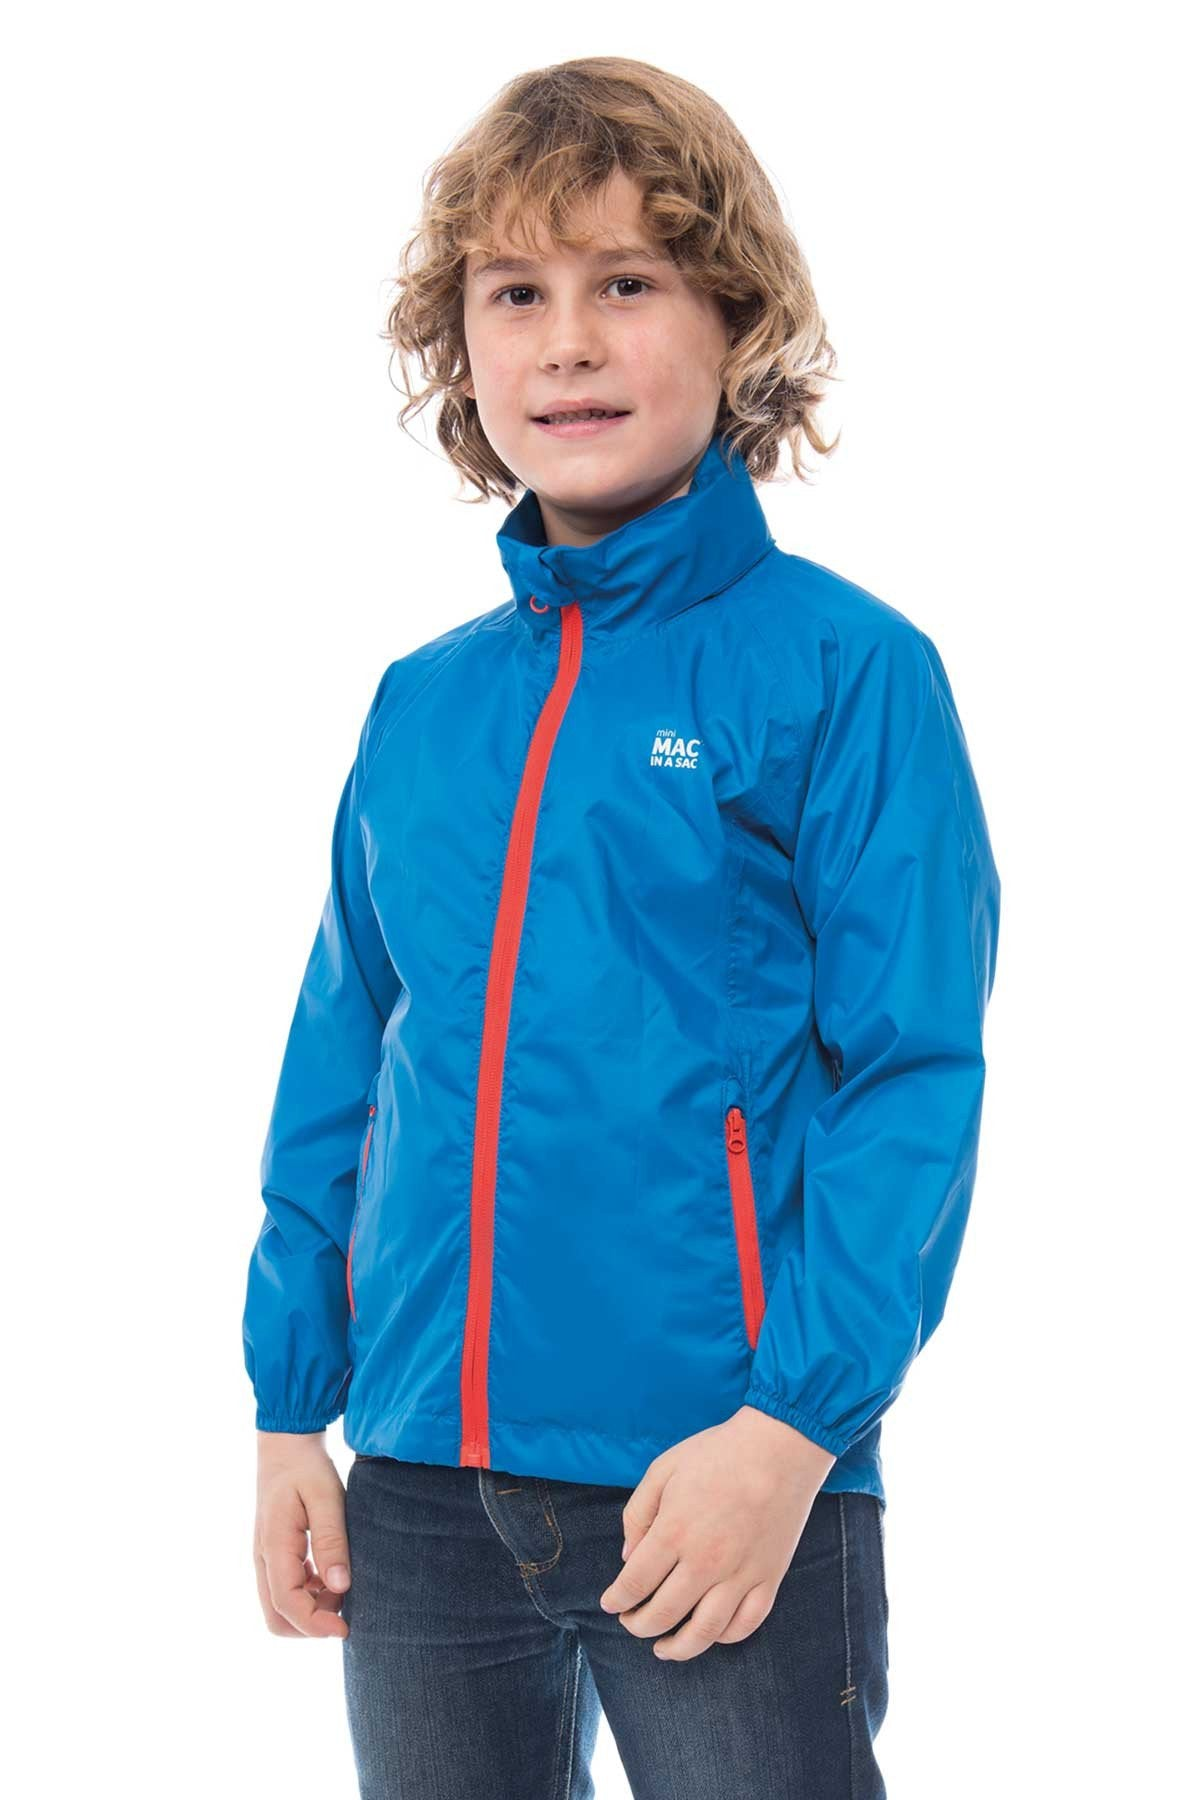 Kids Packable Waterproof Jacket - Blue